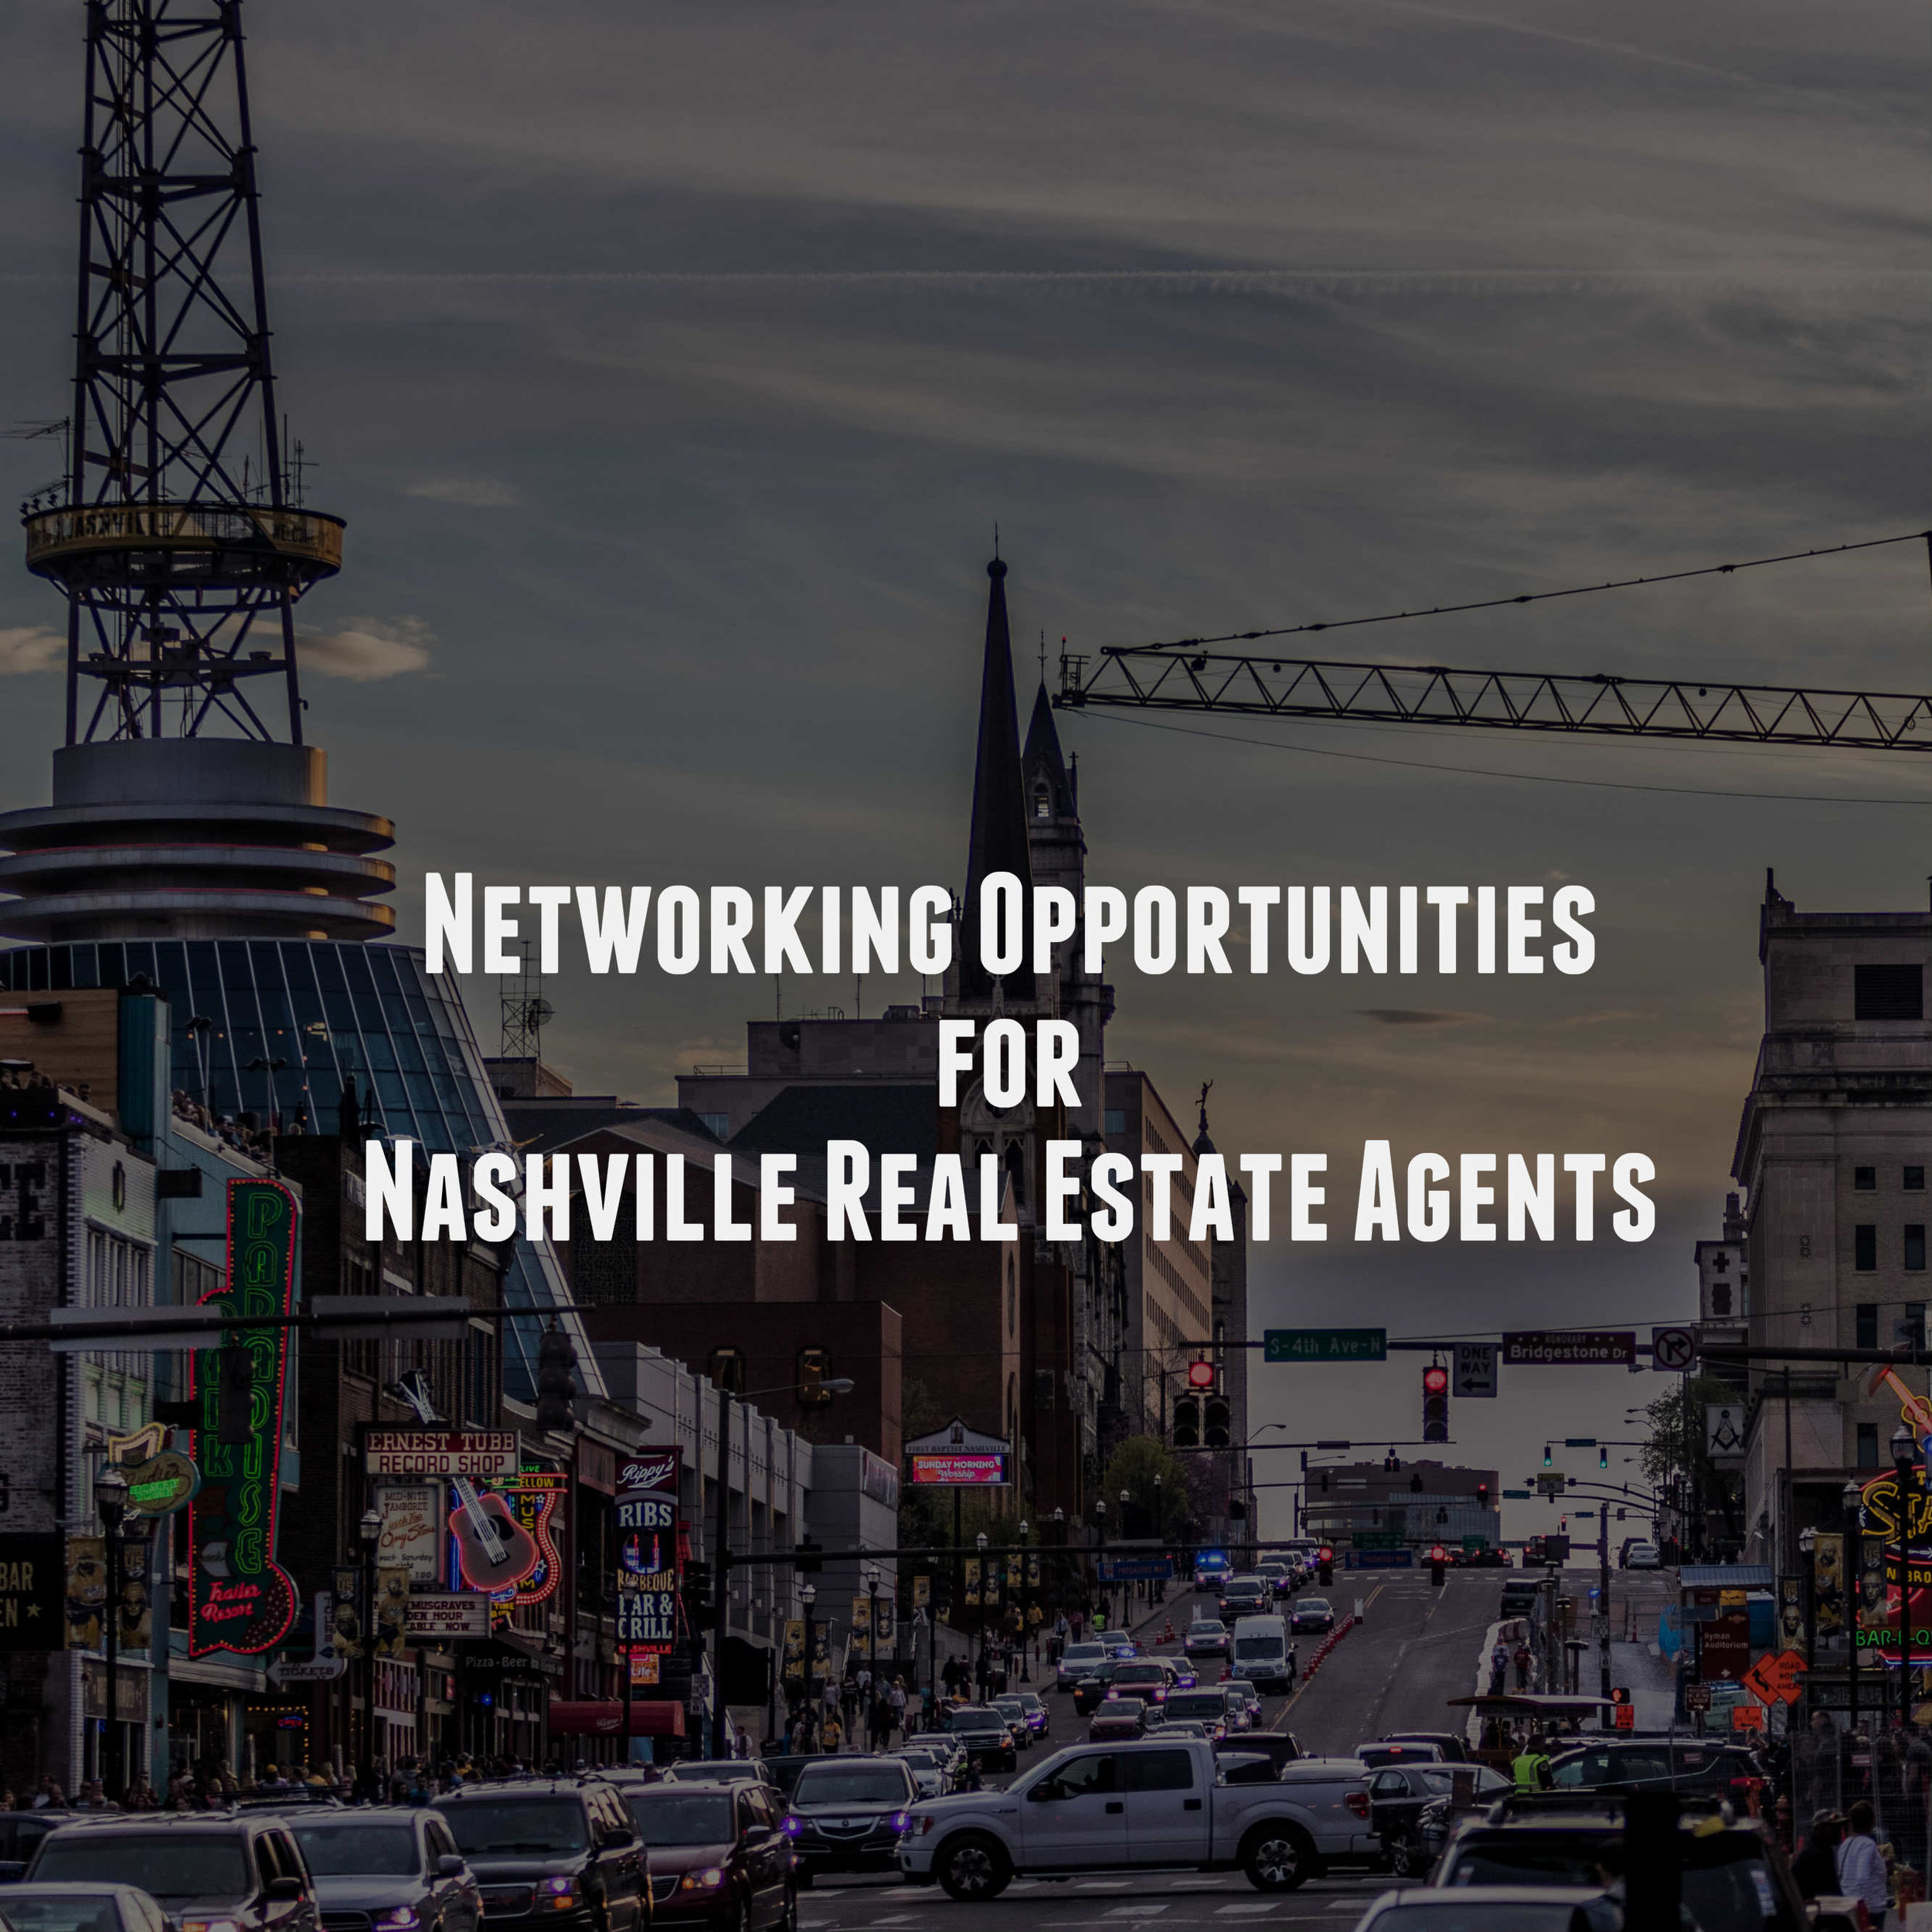 Networking Opportunities for Nashville Real Estate Agents